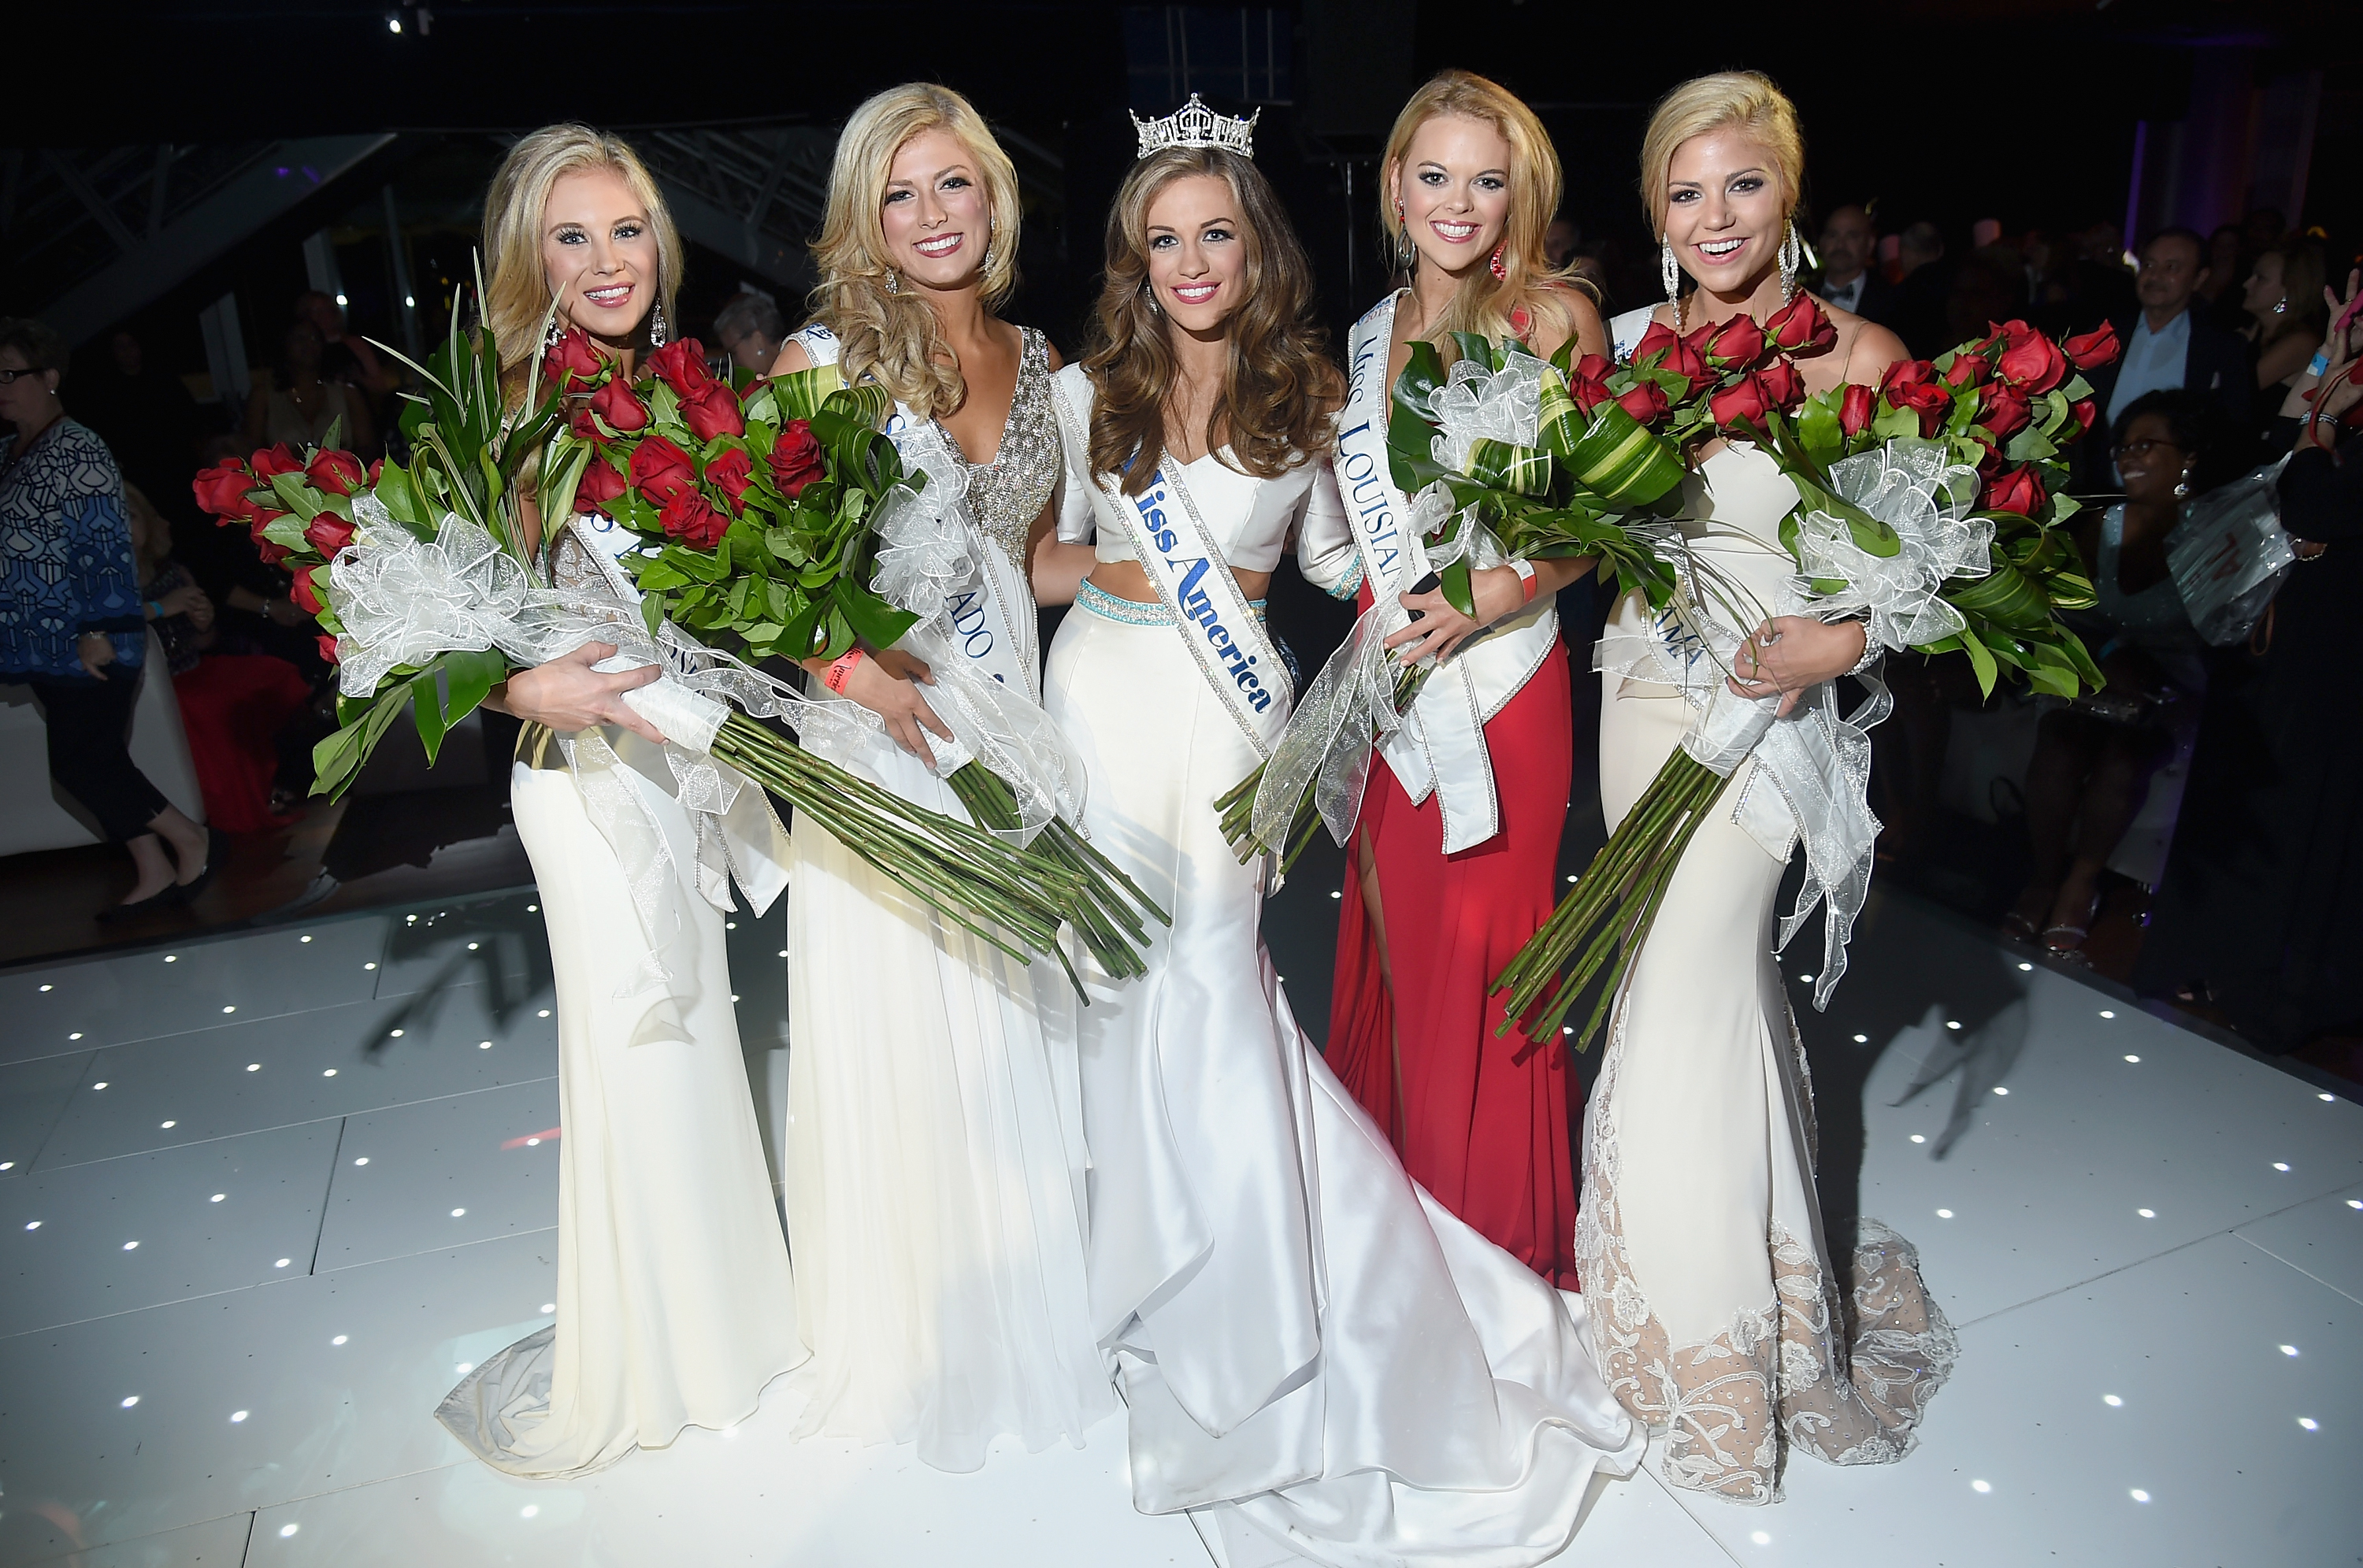 New-Miss-America-To-Be-Crowned-Sunday-Night-In-Atlantic-City